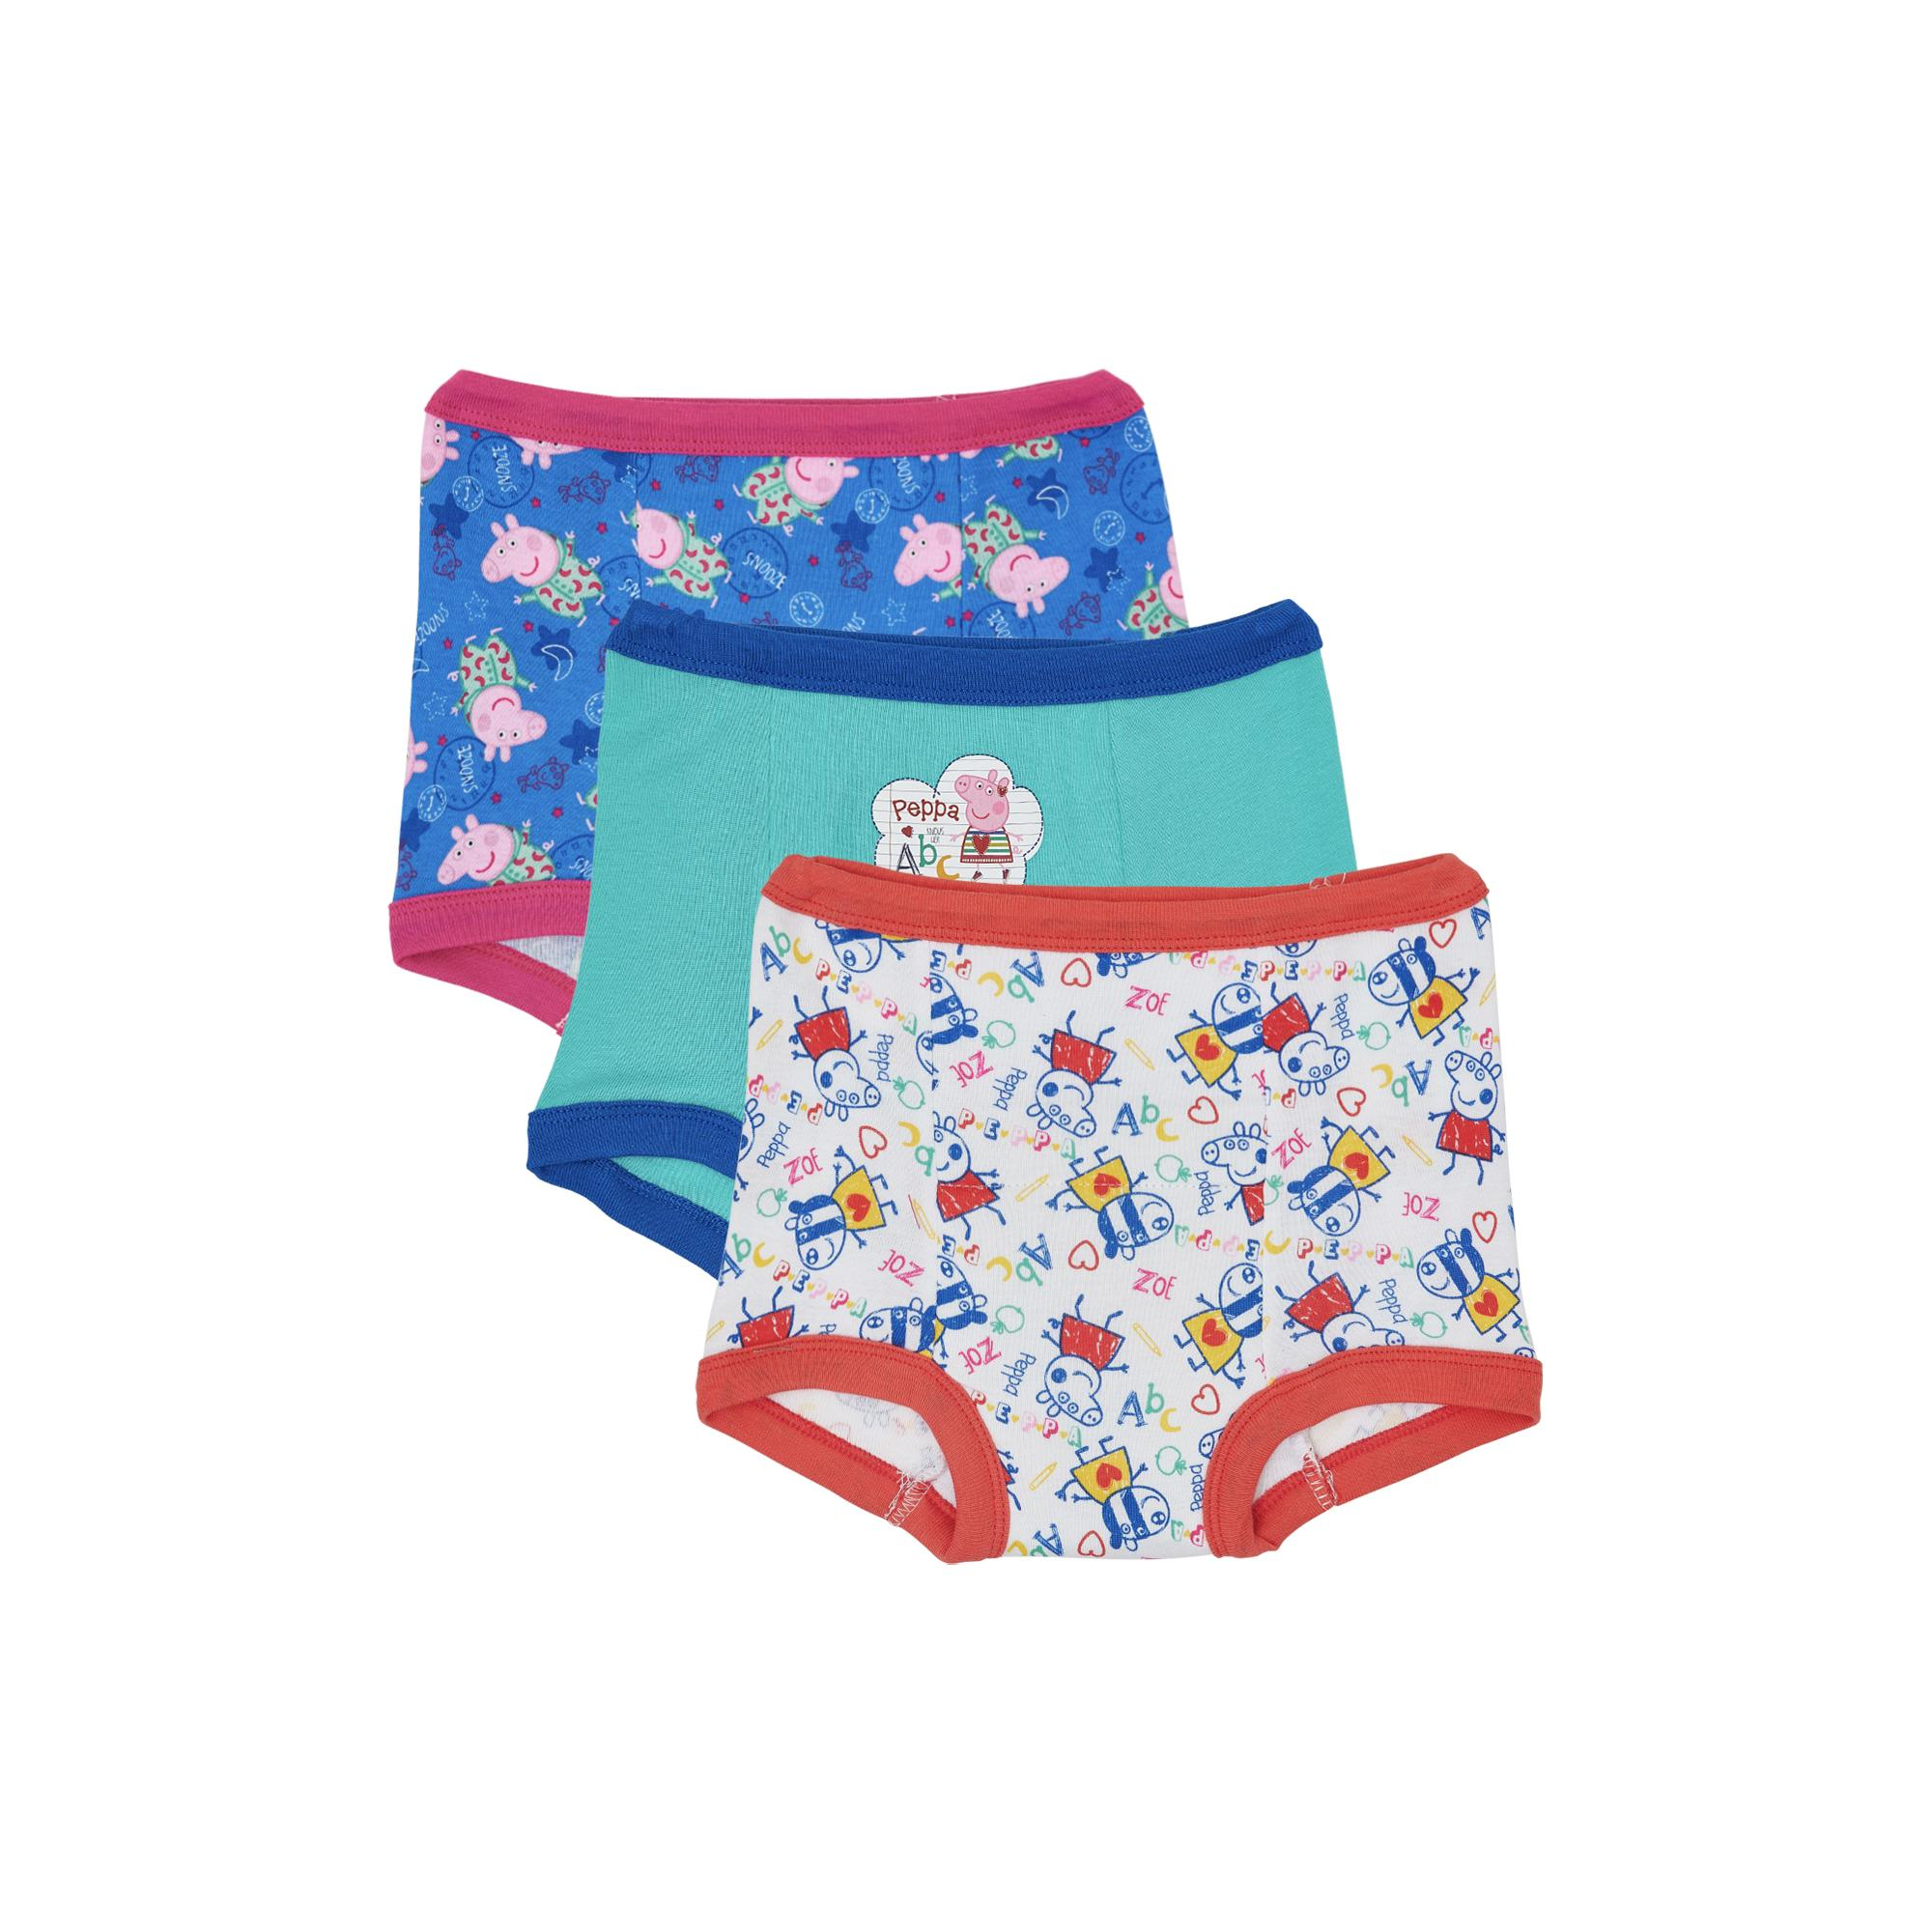 Peppa Pig Toddler Girls Training Pants, 3 Pack